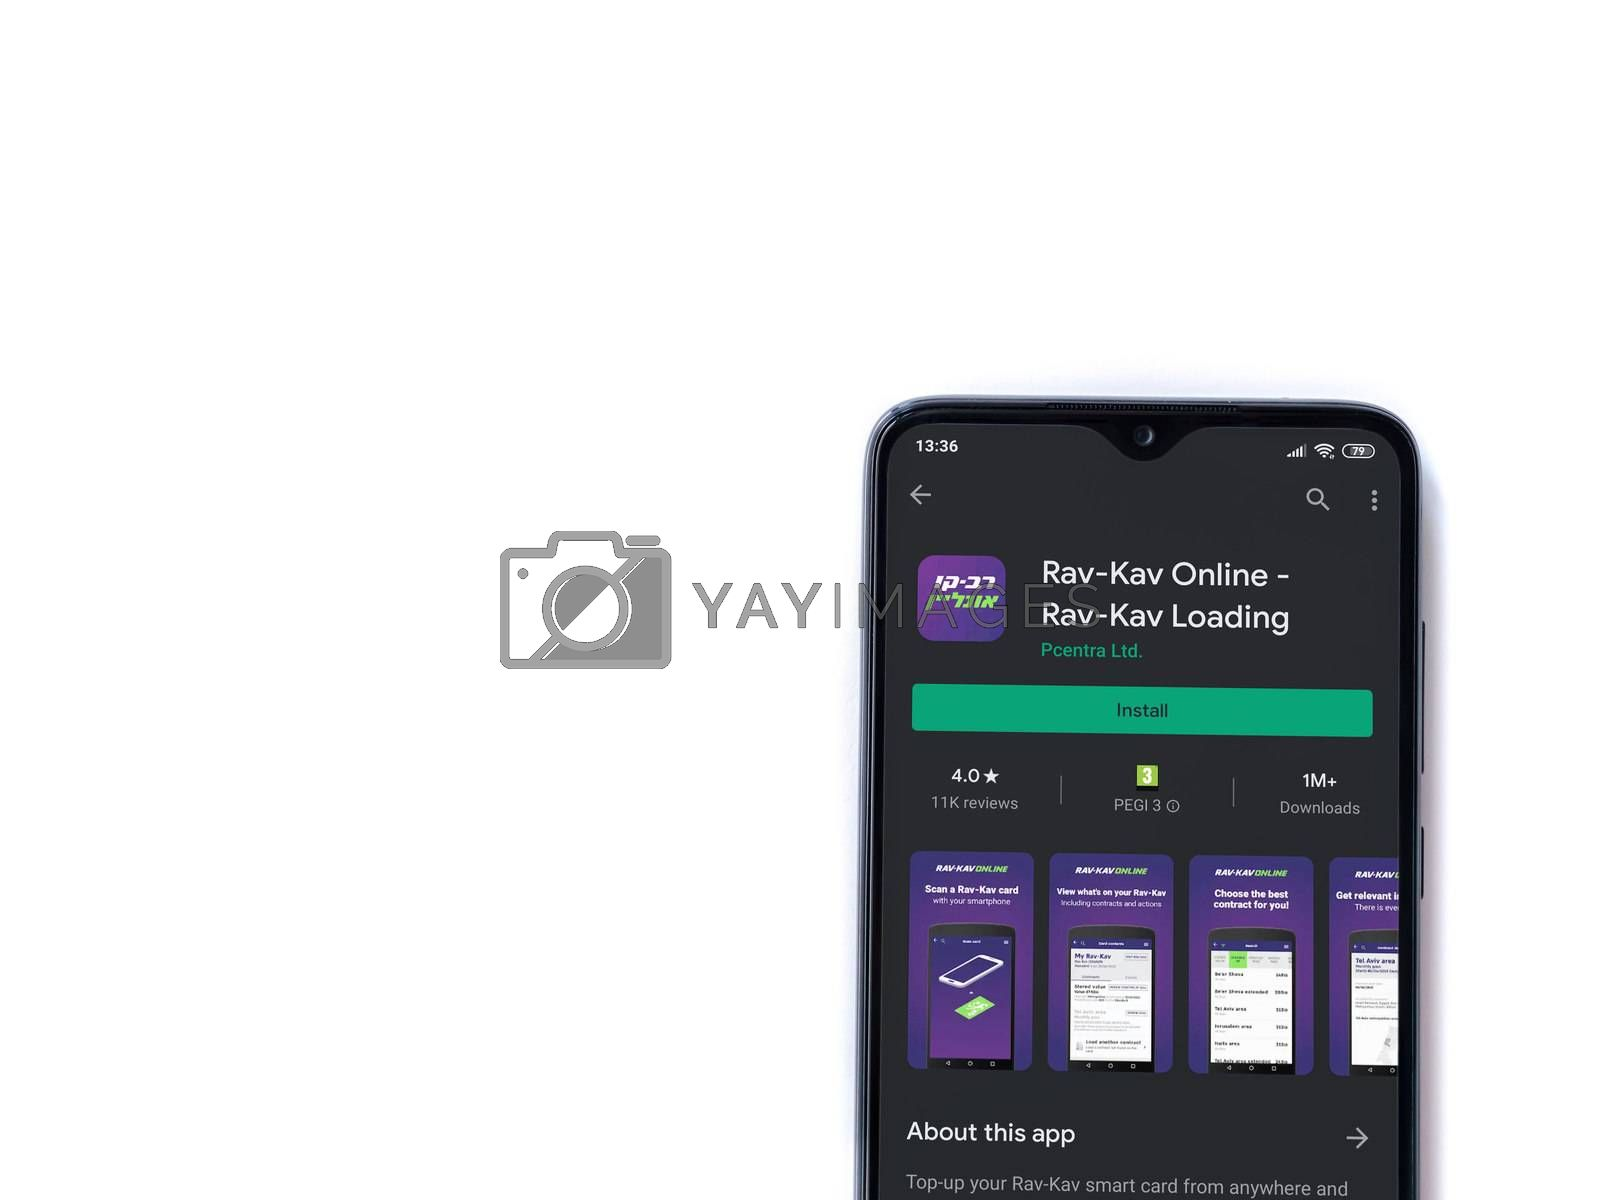 Lod, Israel - July 8, 2020: Rav Kav Online app play store page on the display of a black mobile smartphone isolated on white background. Top view flat lay with copy space.